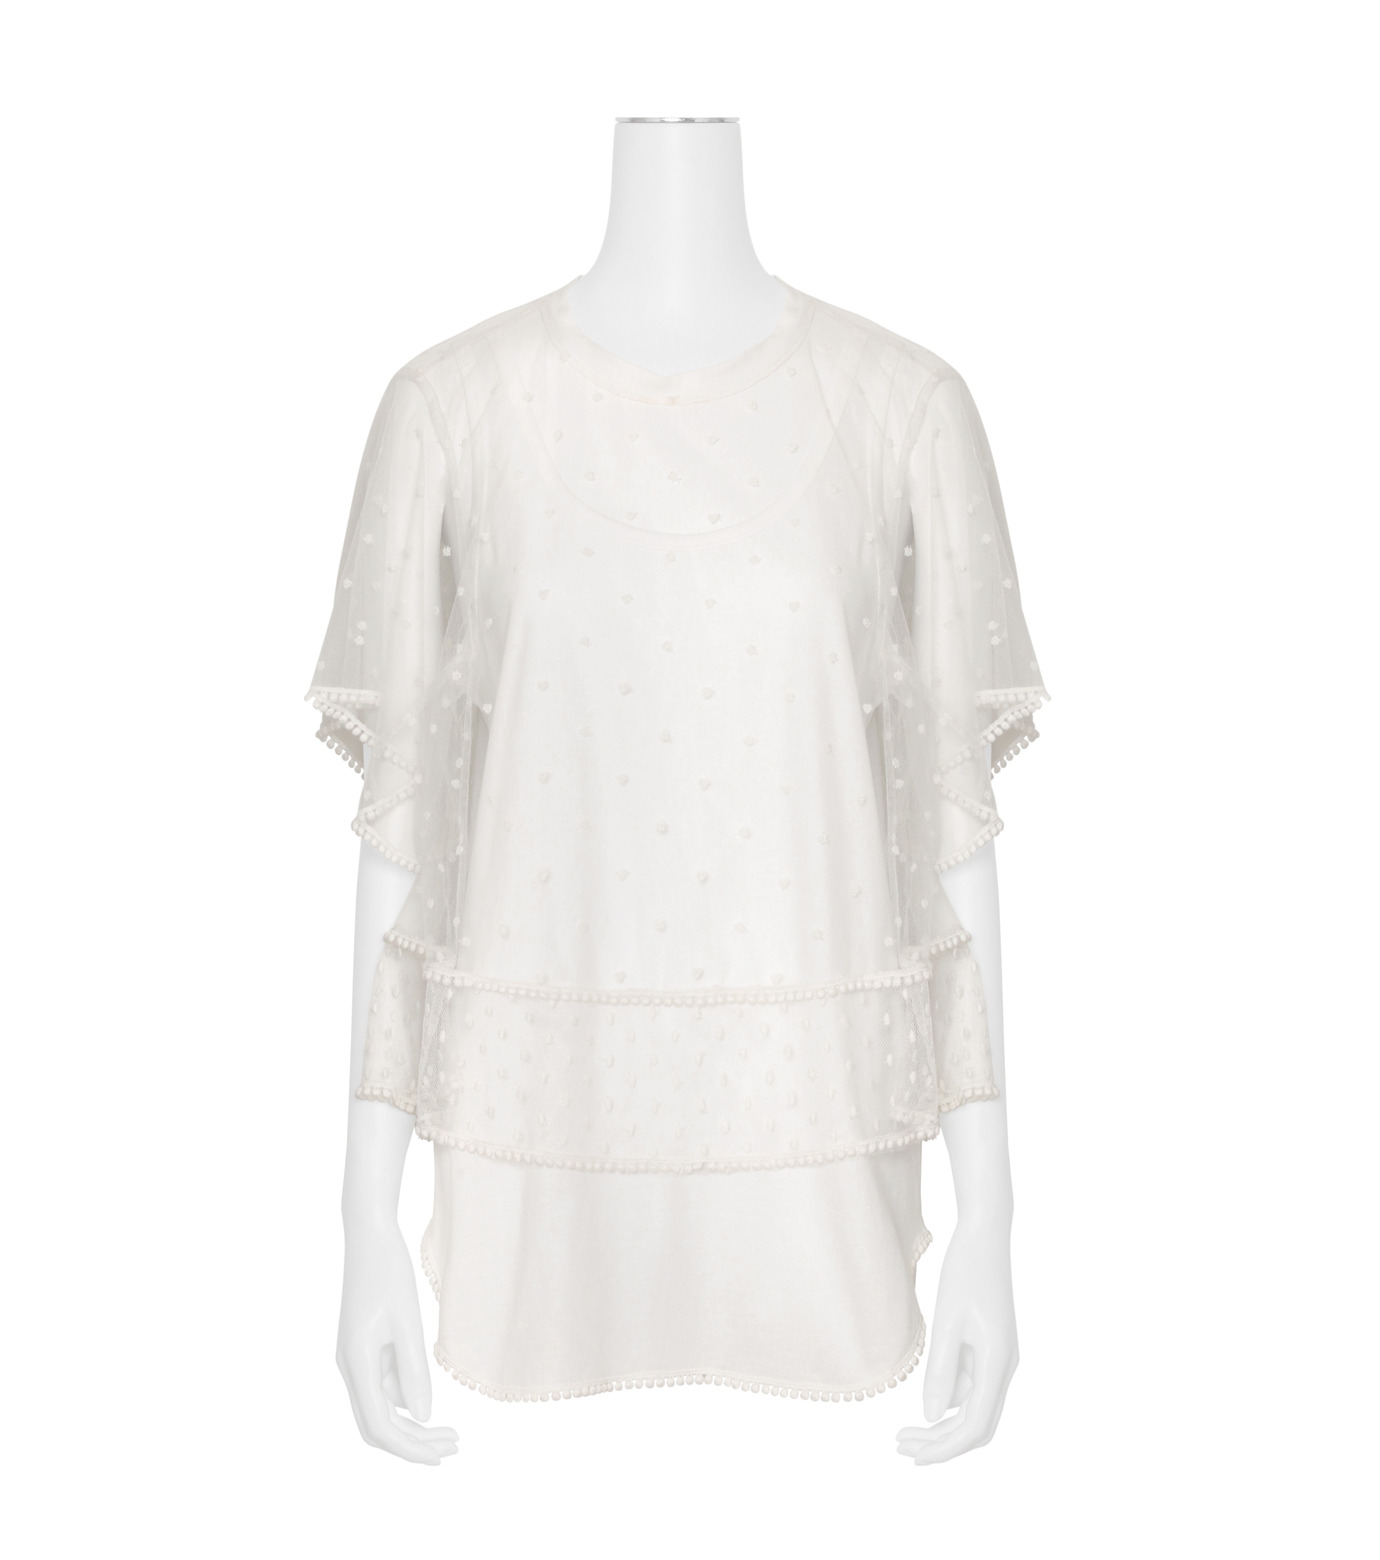 Chloe(クロエ)のdot lace t-shirt-WHITE(カットソー/cut and sewn)-JH12080B-4 拡大詳細画像1